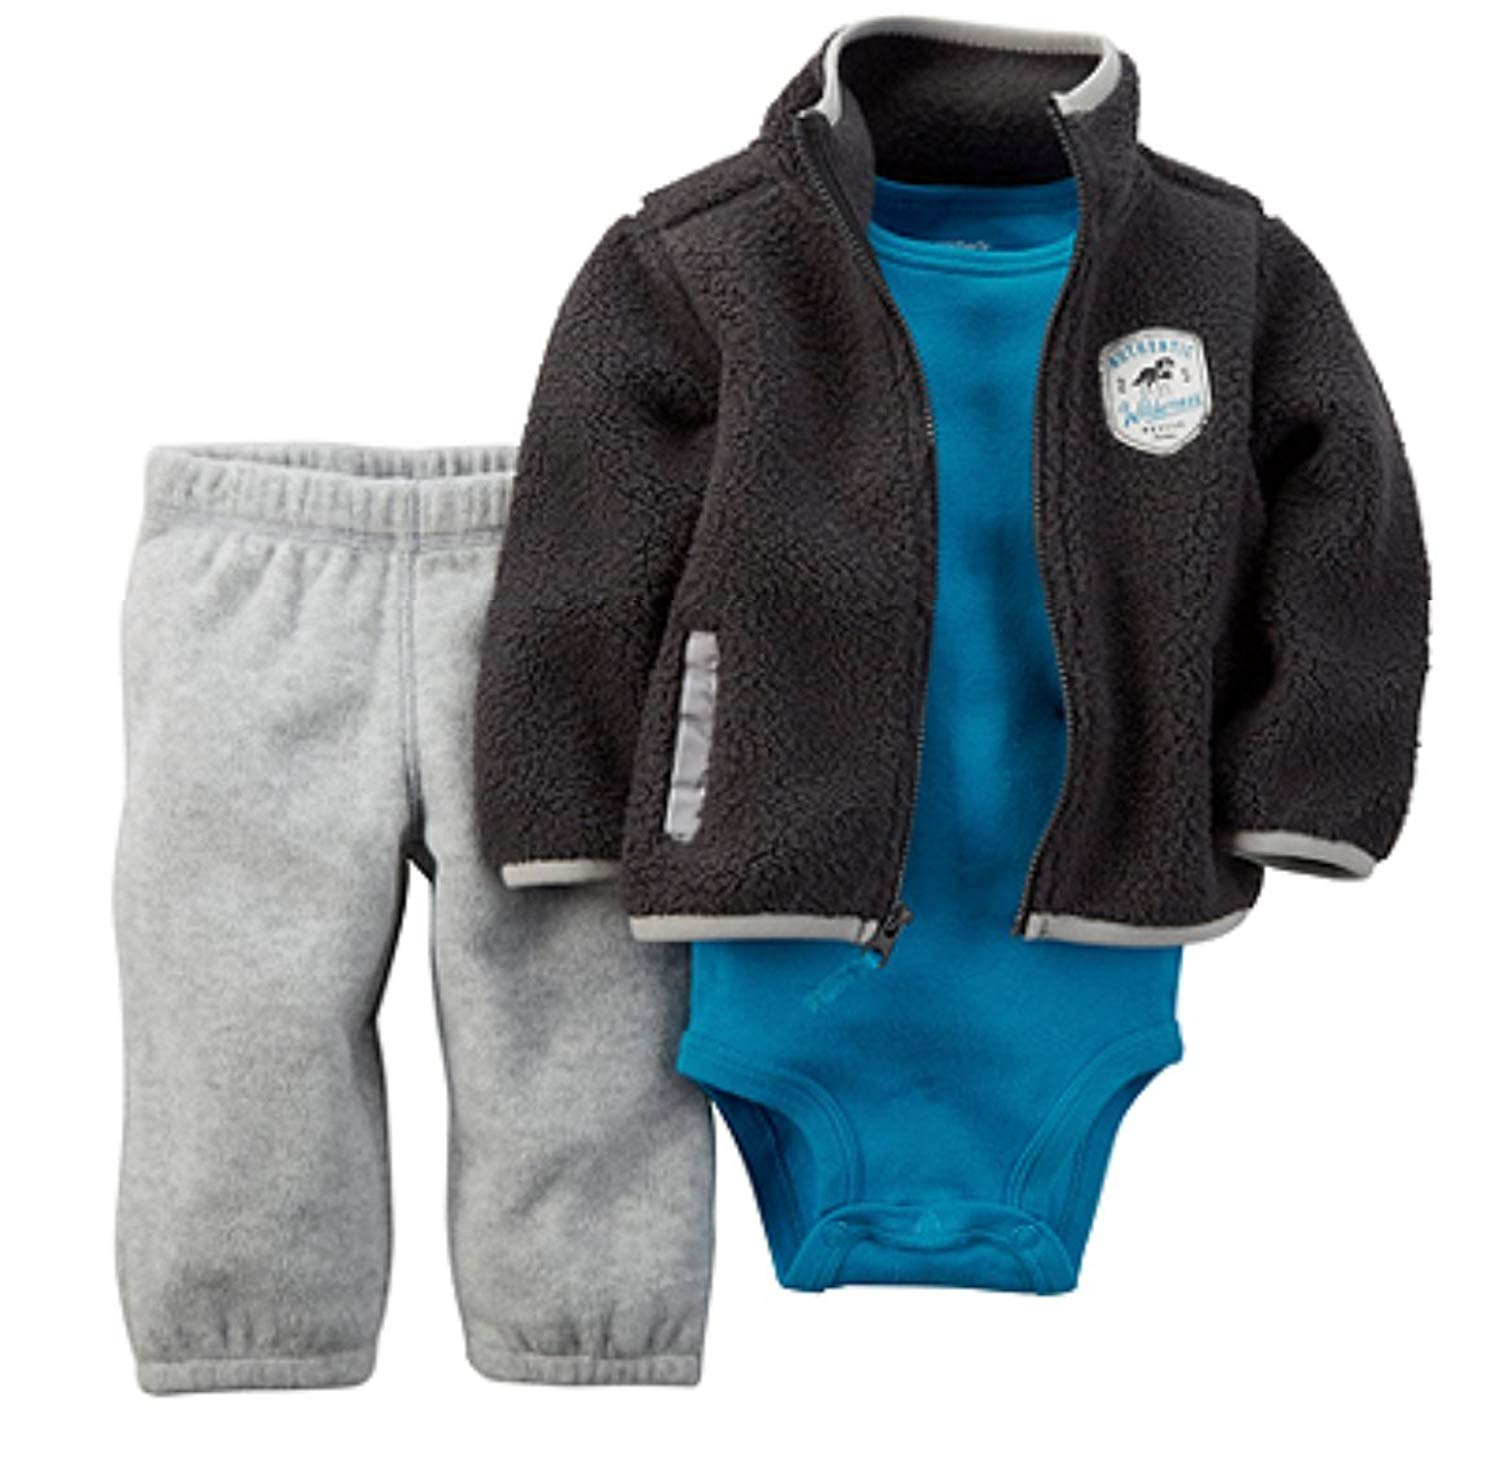 a3ade85108 Cheap Carters 3 Piece, find Carters 3 Piece deals on line at Alibaba.com